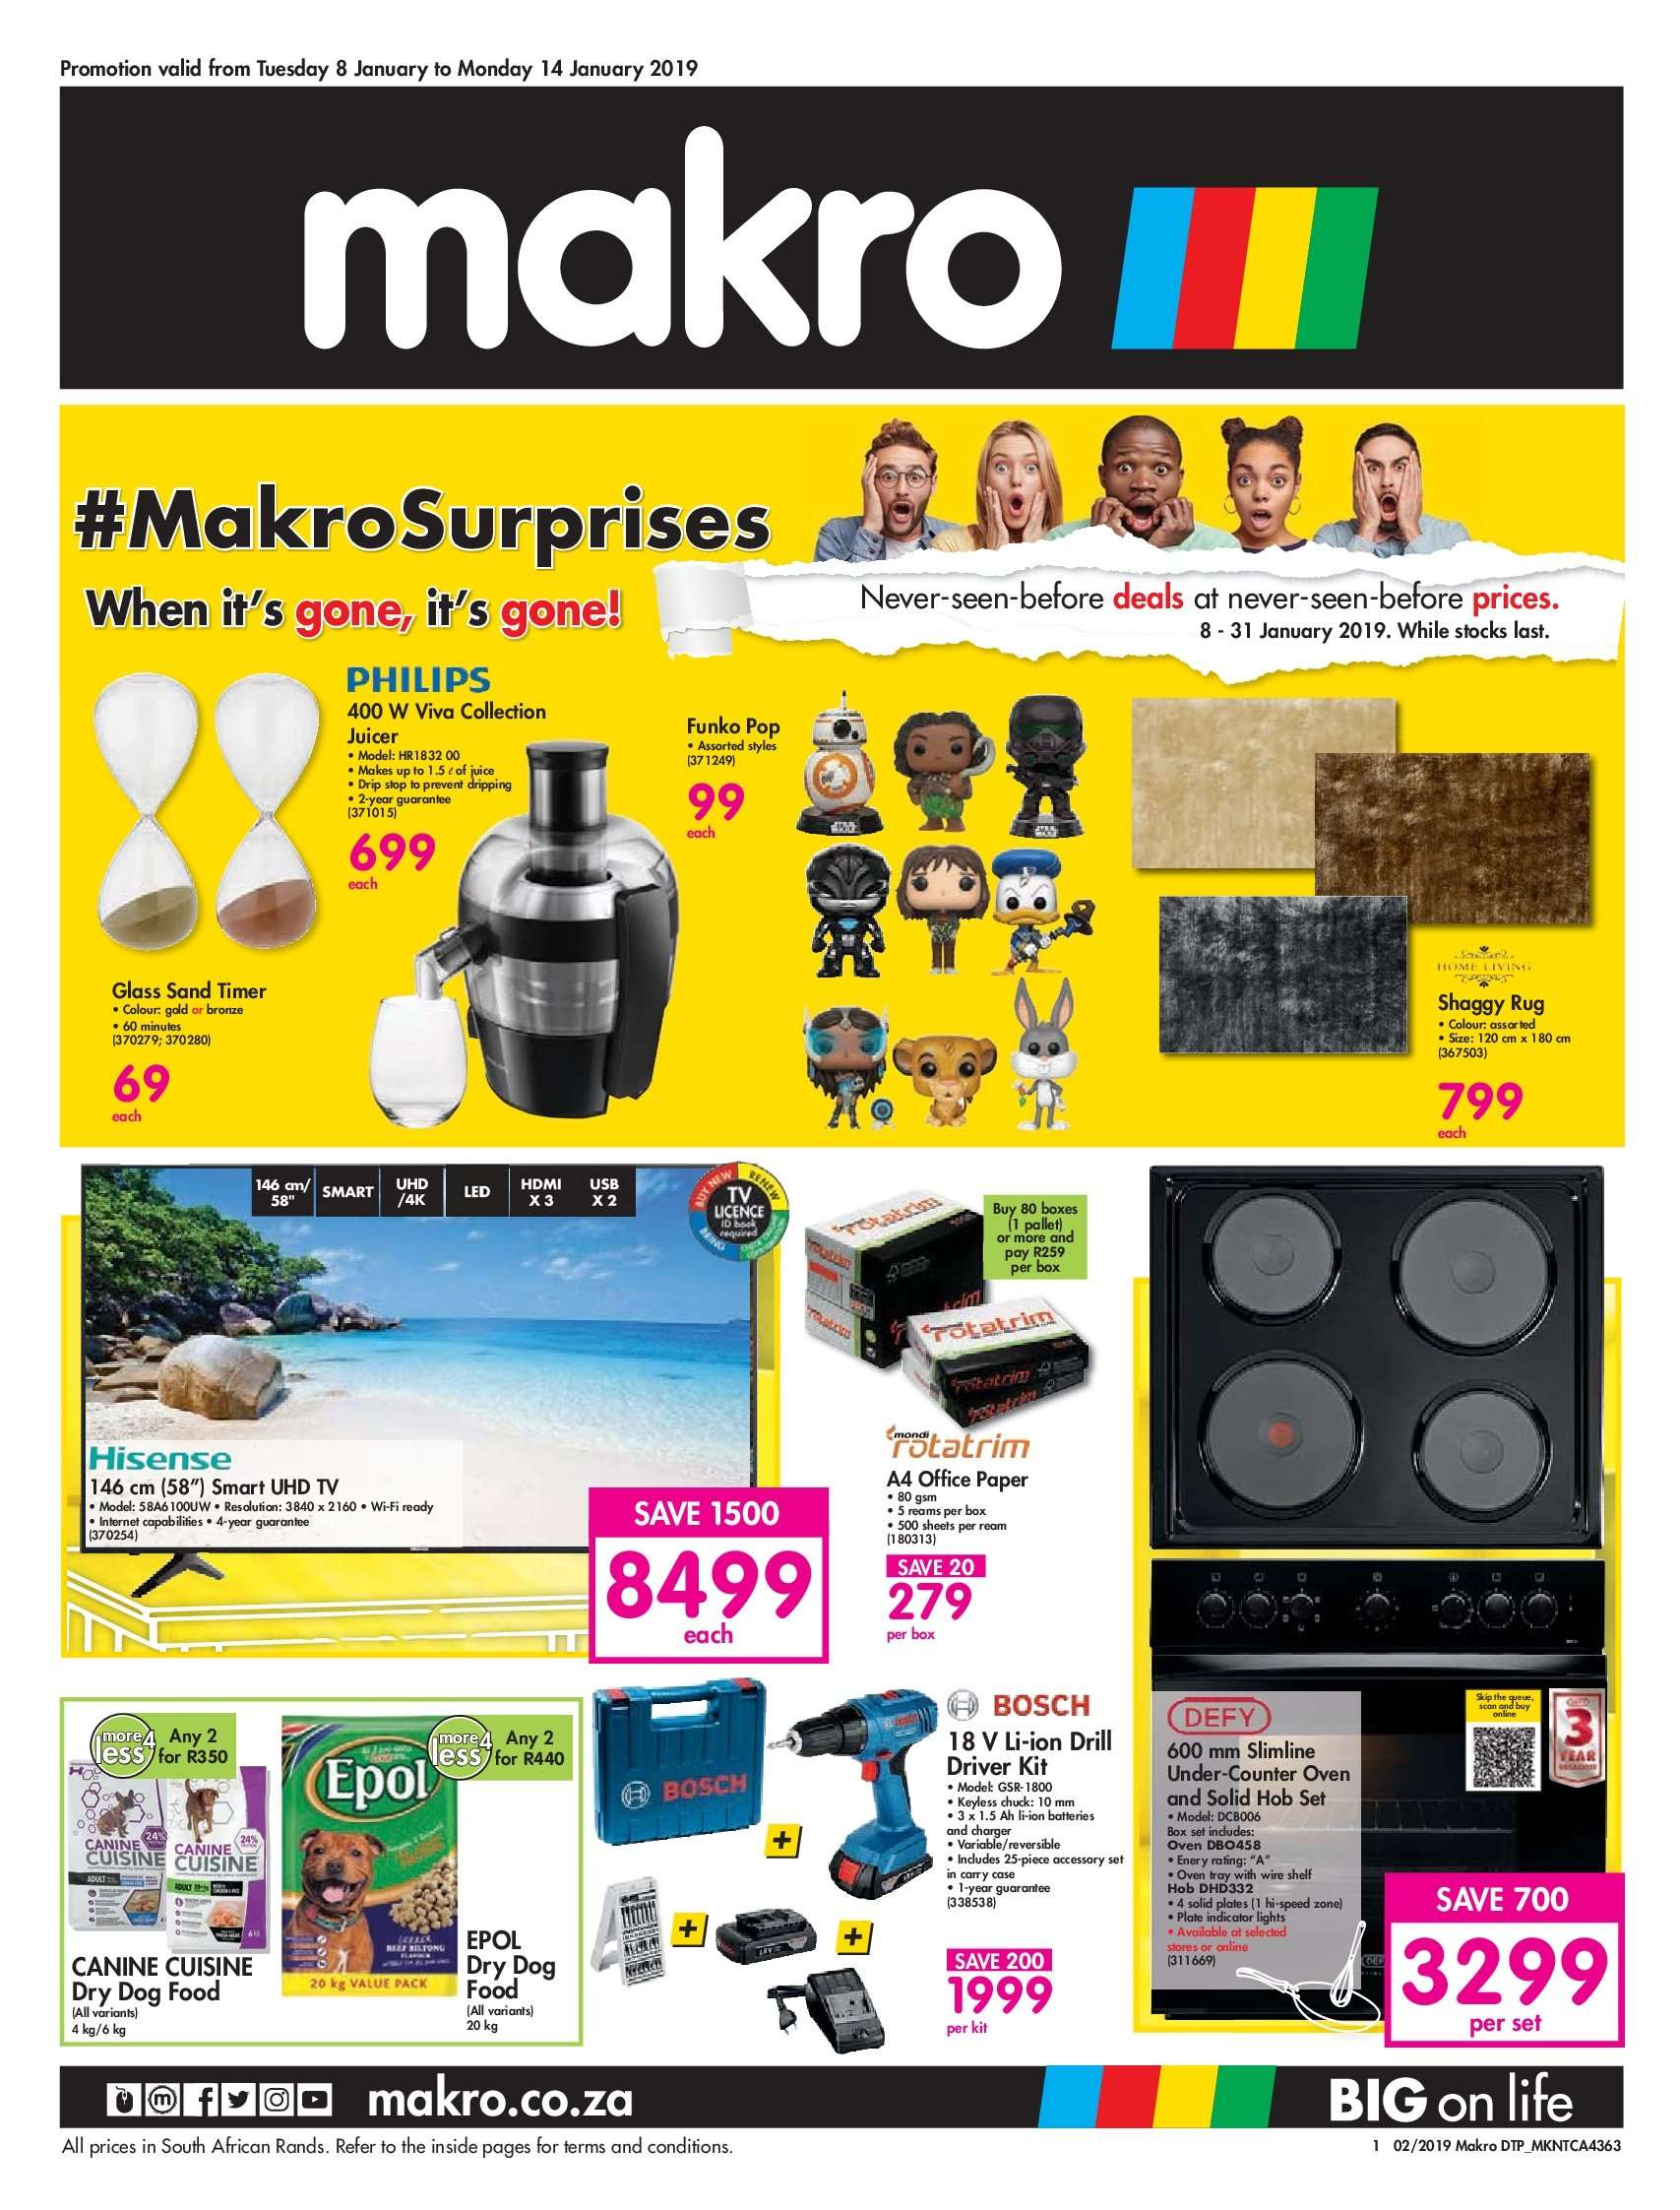 Makro special - 01.08.2019 - 01.14.2019 - Sales products - animal food, bosch, dog food, collection, glass, rug, solid, timer, uhd tv, philips, oven,  paper. Page 1.